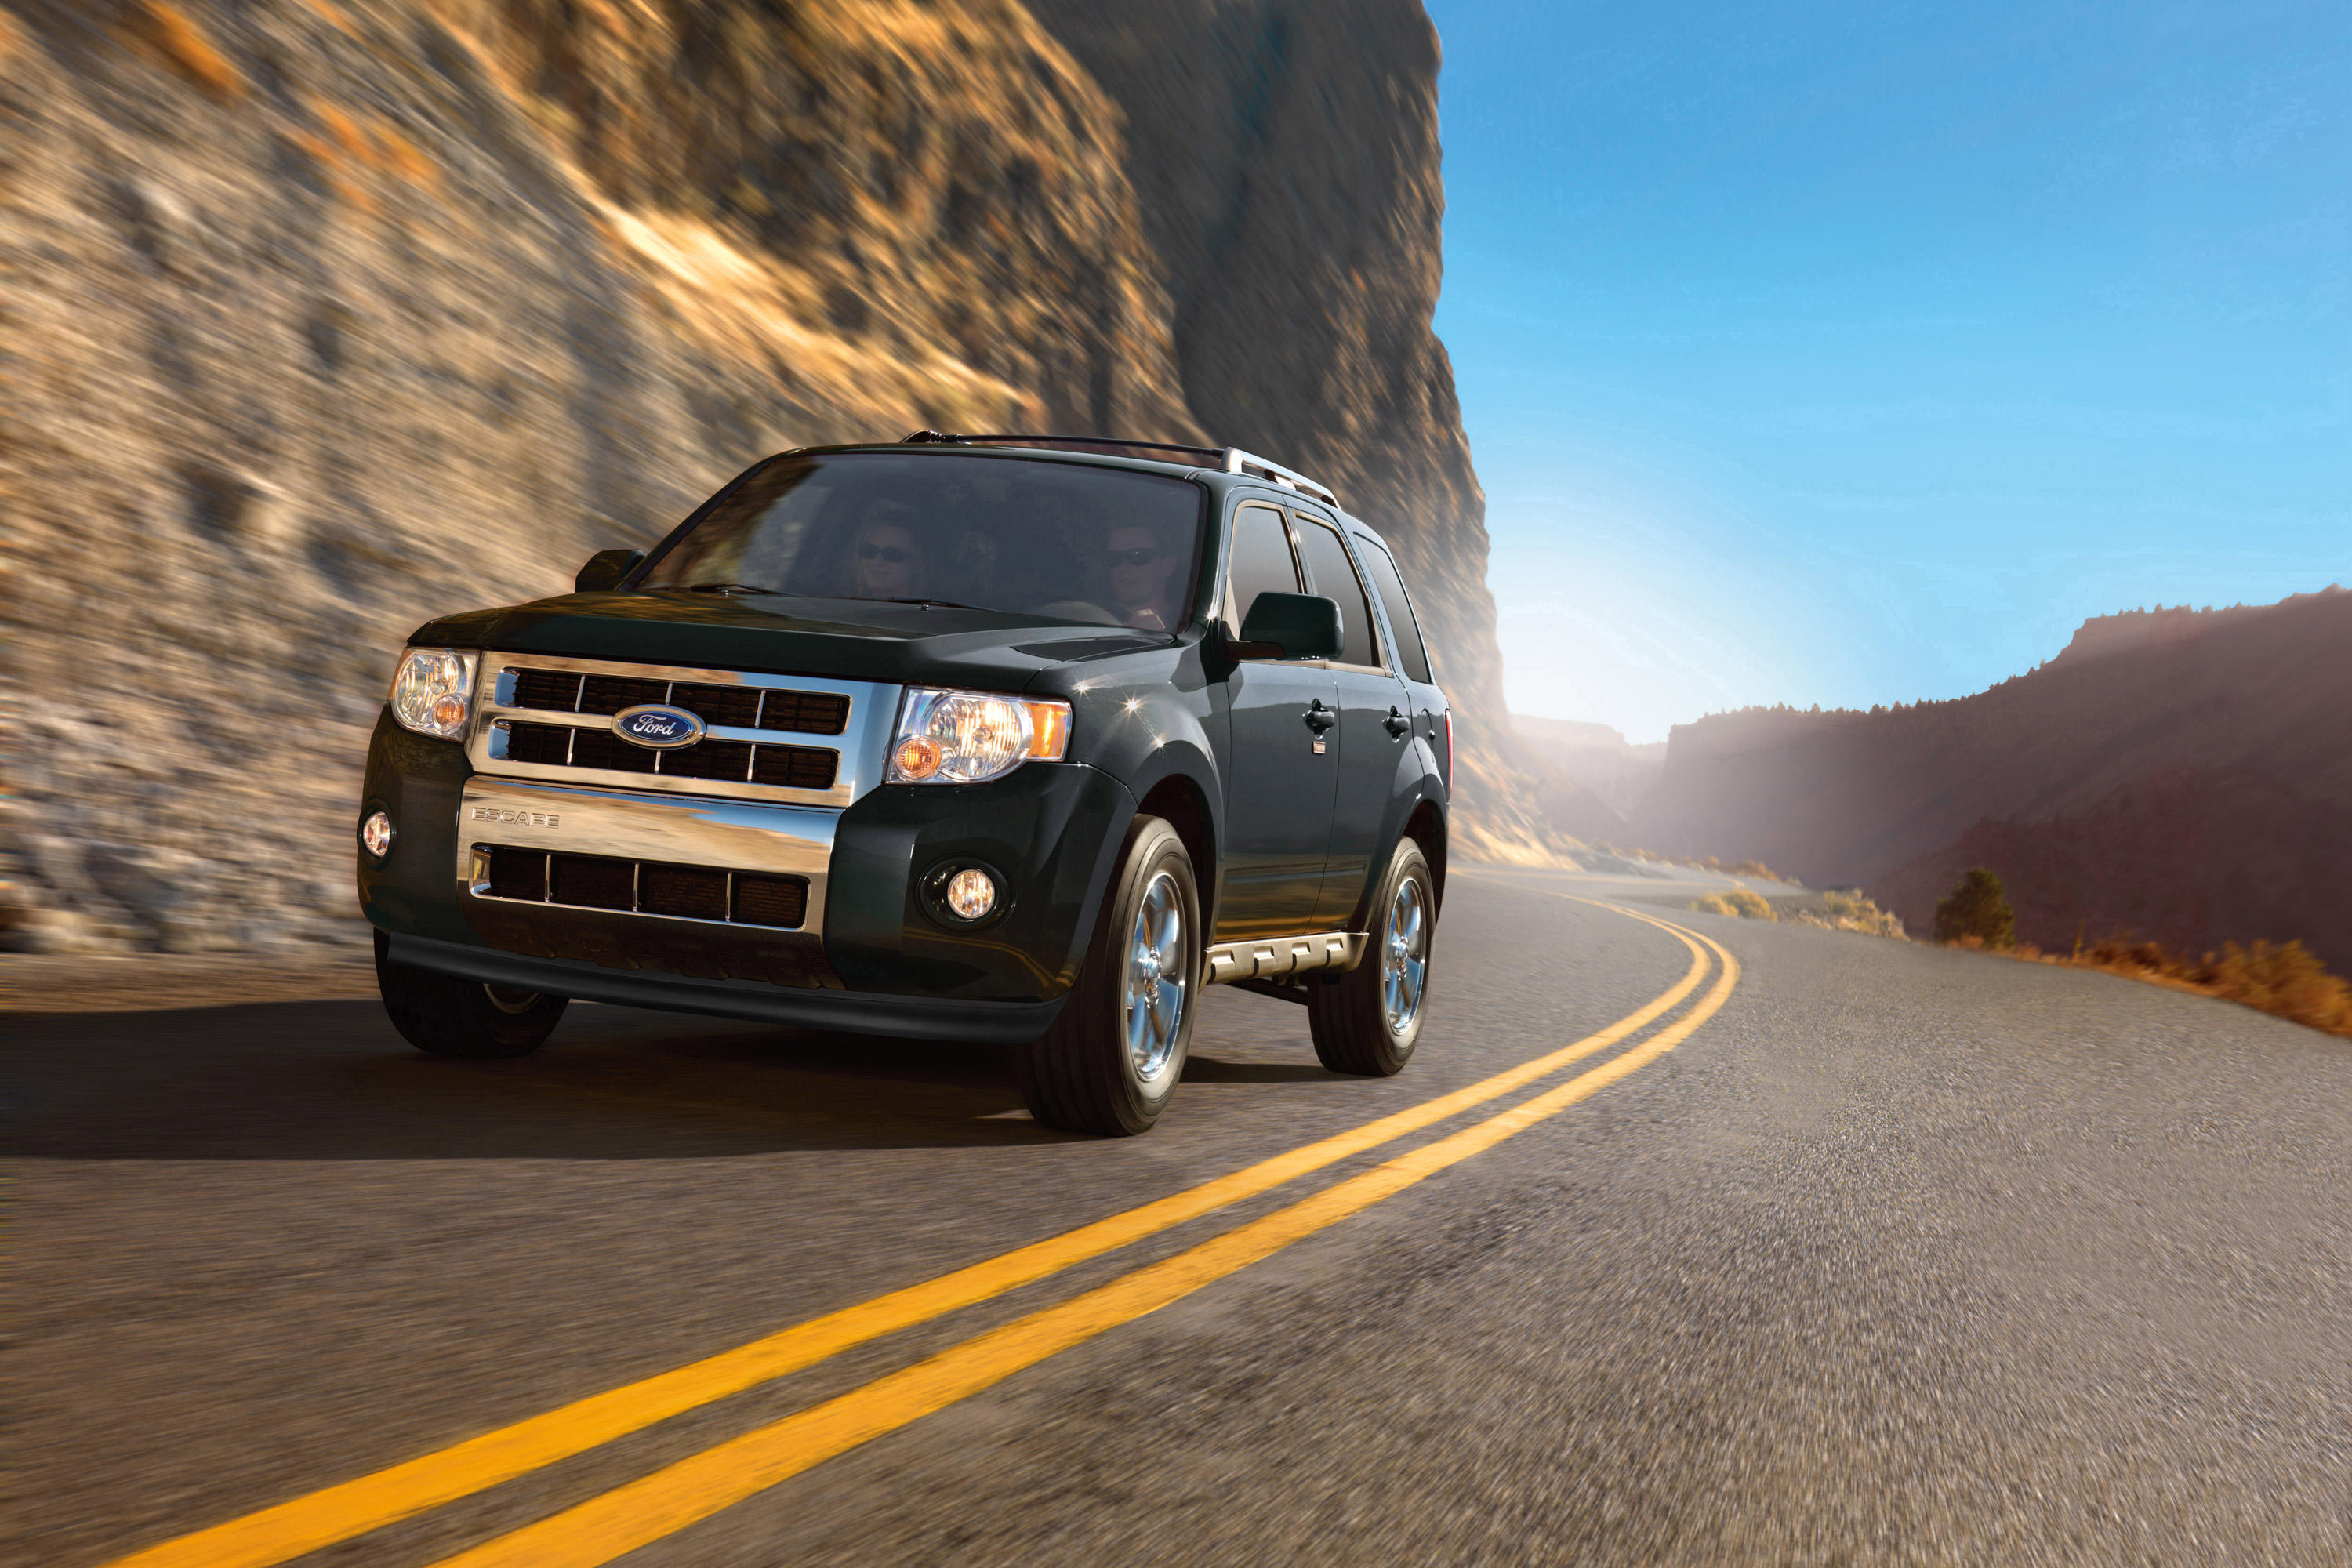 2010-ford-escape-exterior-2